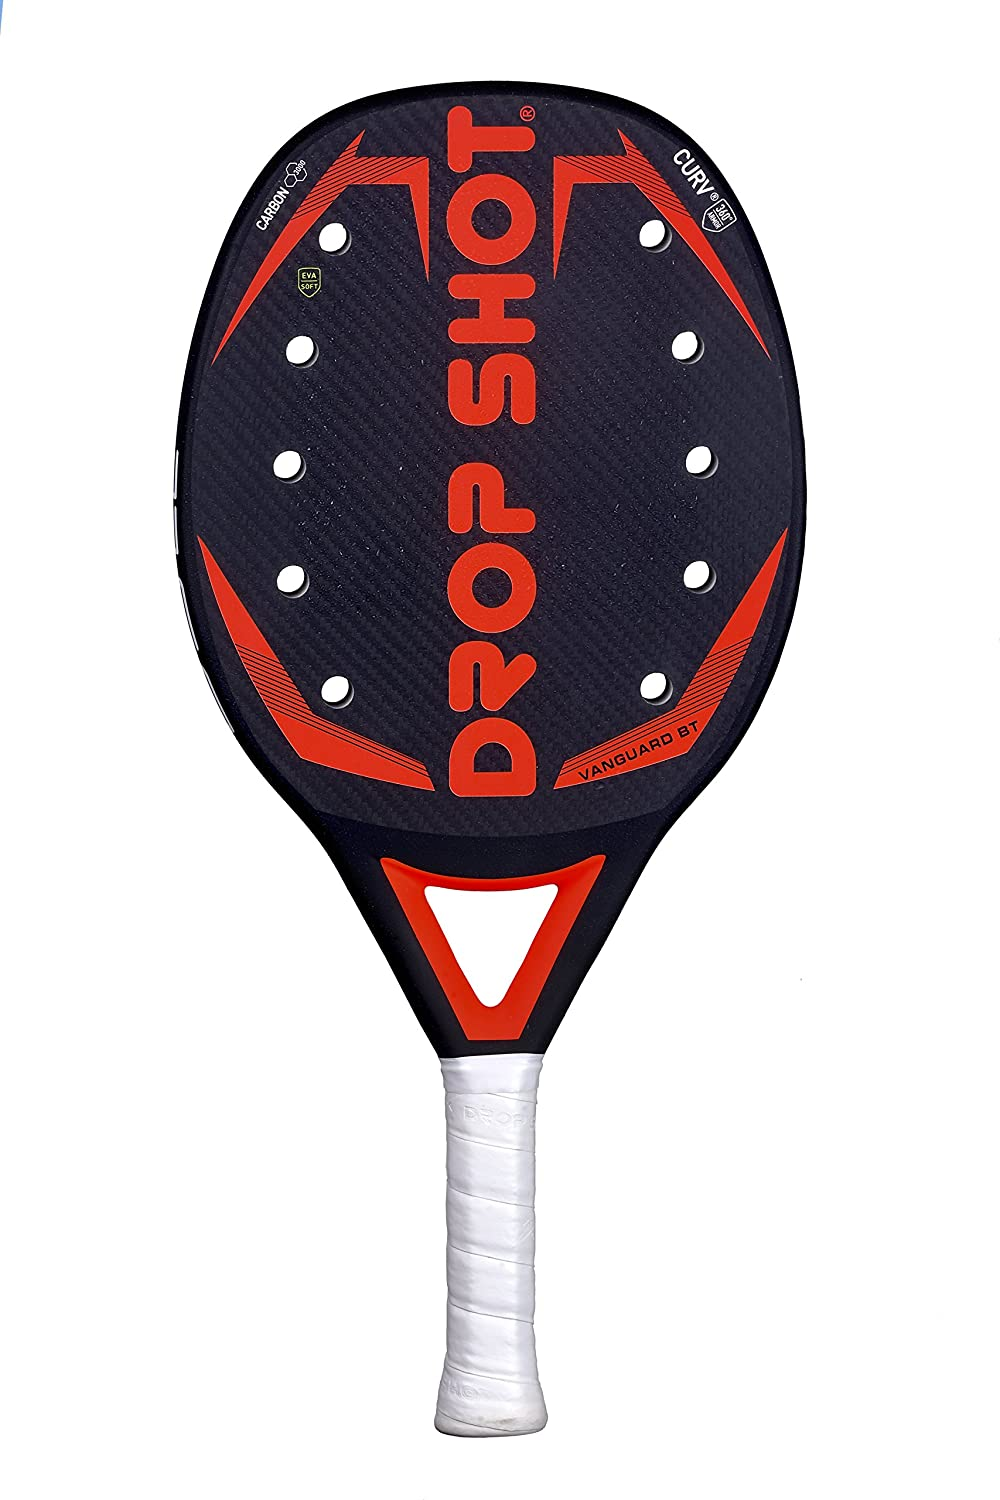 DROP SHOT Vanguard BT Pala Beach Tenis, Unisex Adulto, Blanco, 330-360 gr: Amazon.es: Deportes y aire libre